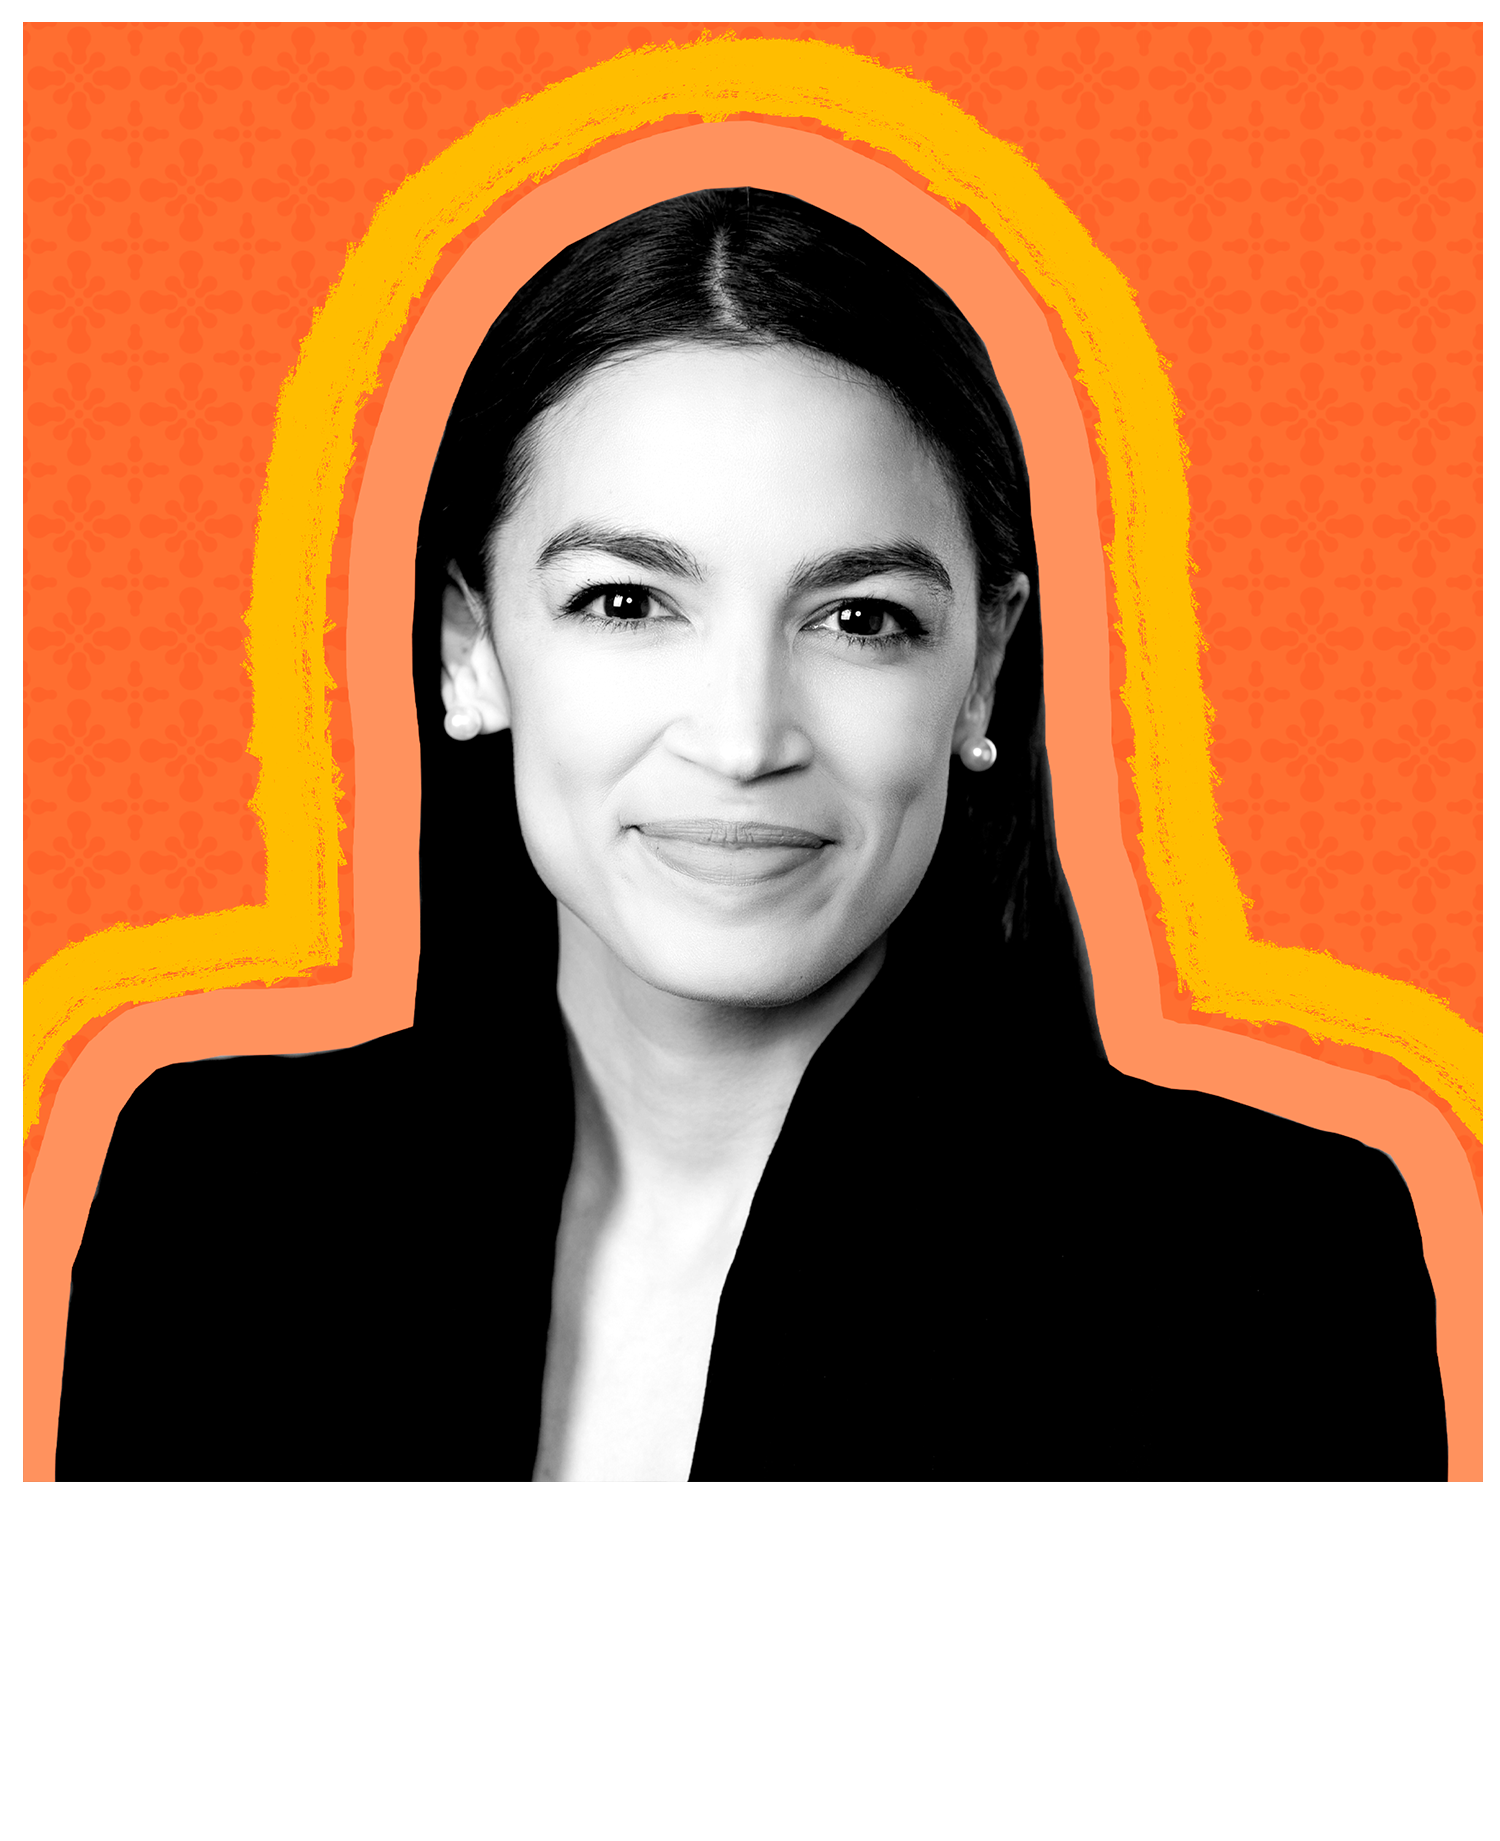 08262019---UWDA-Endorsement-Graphic-AOC-Slide-v2